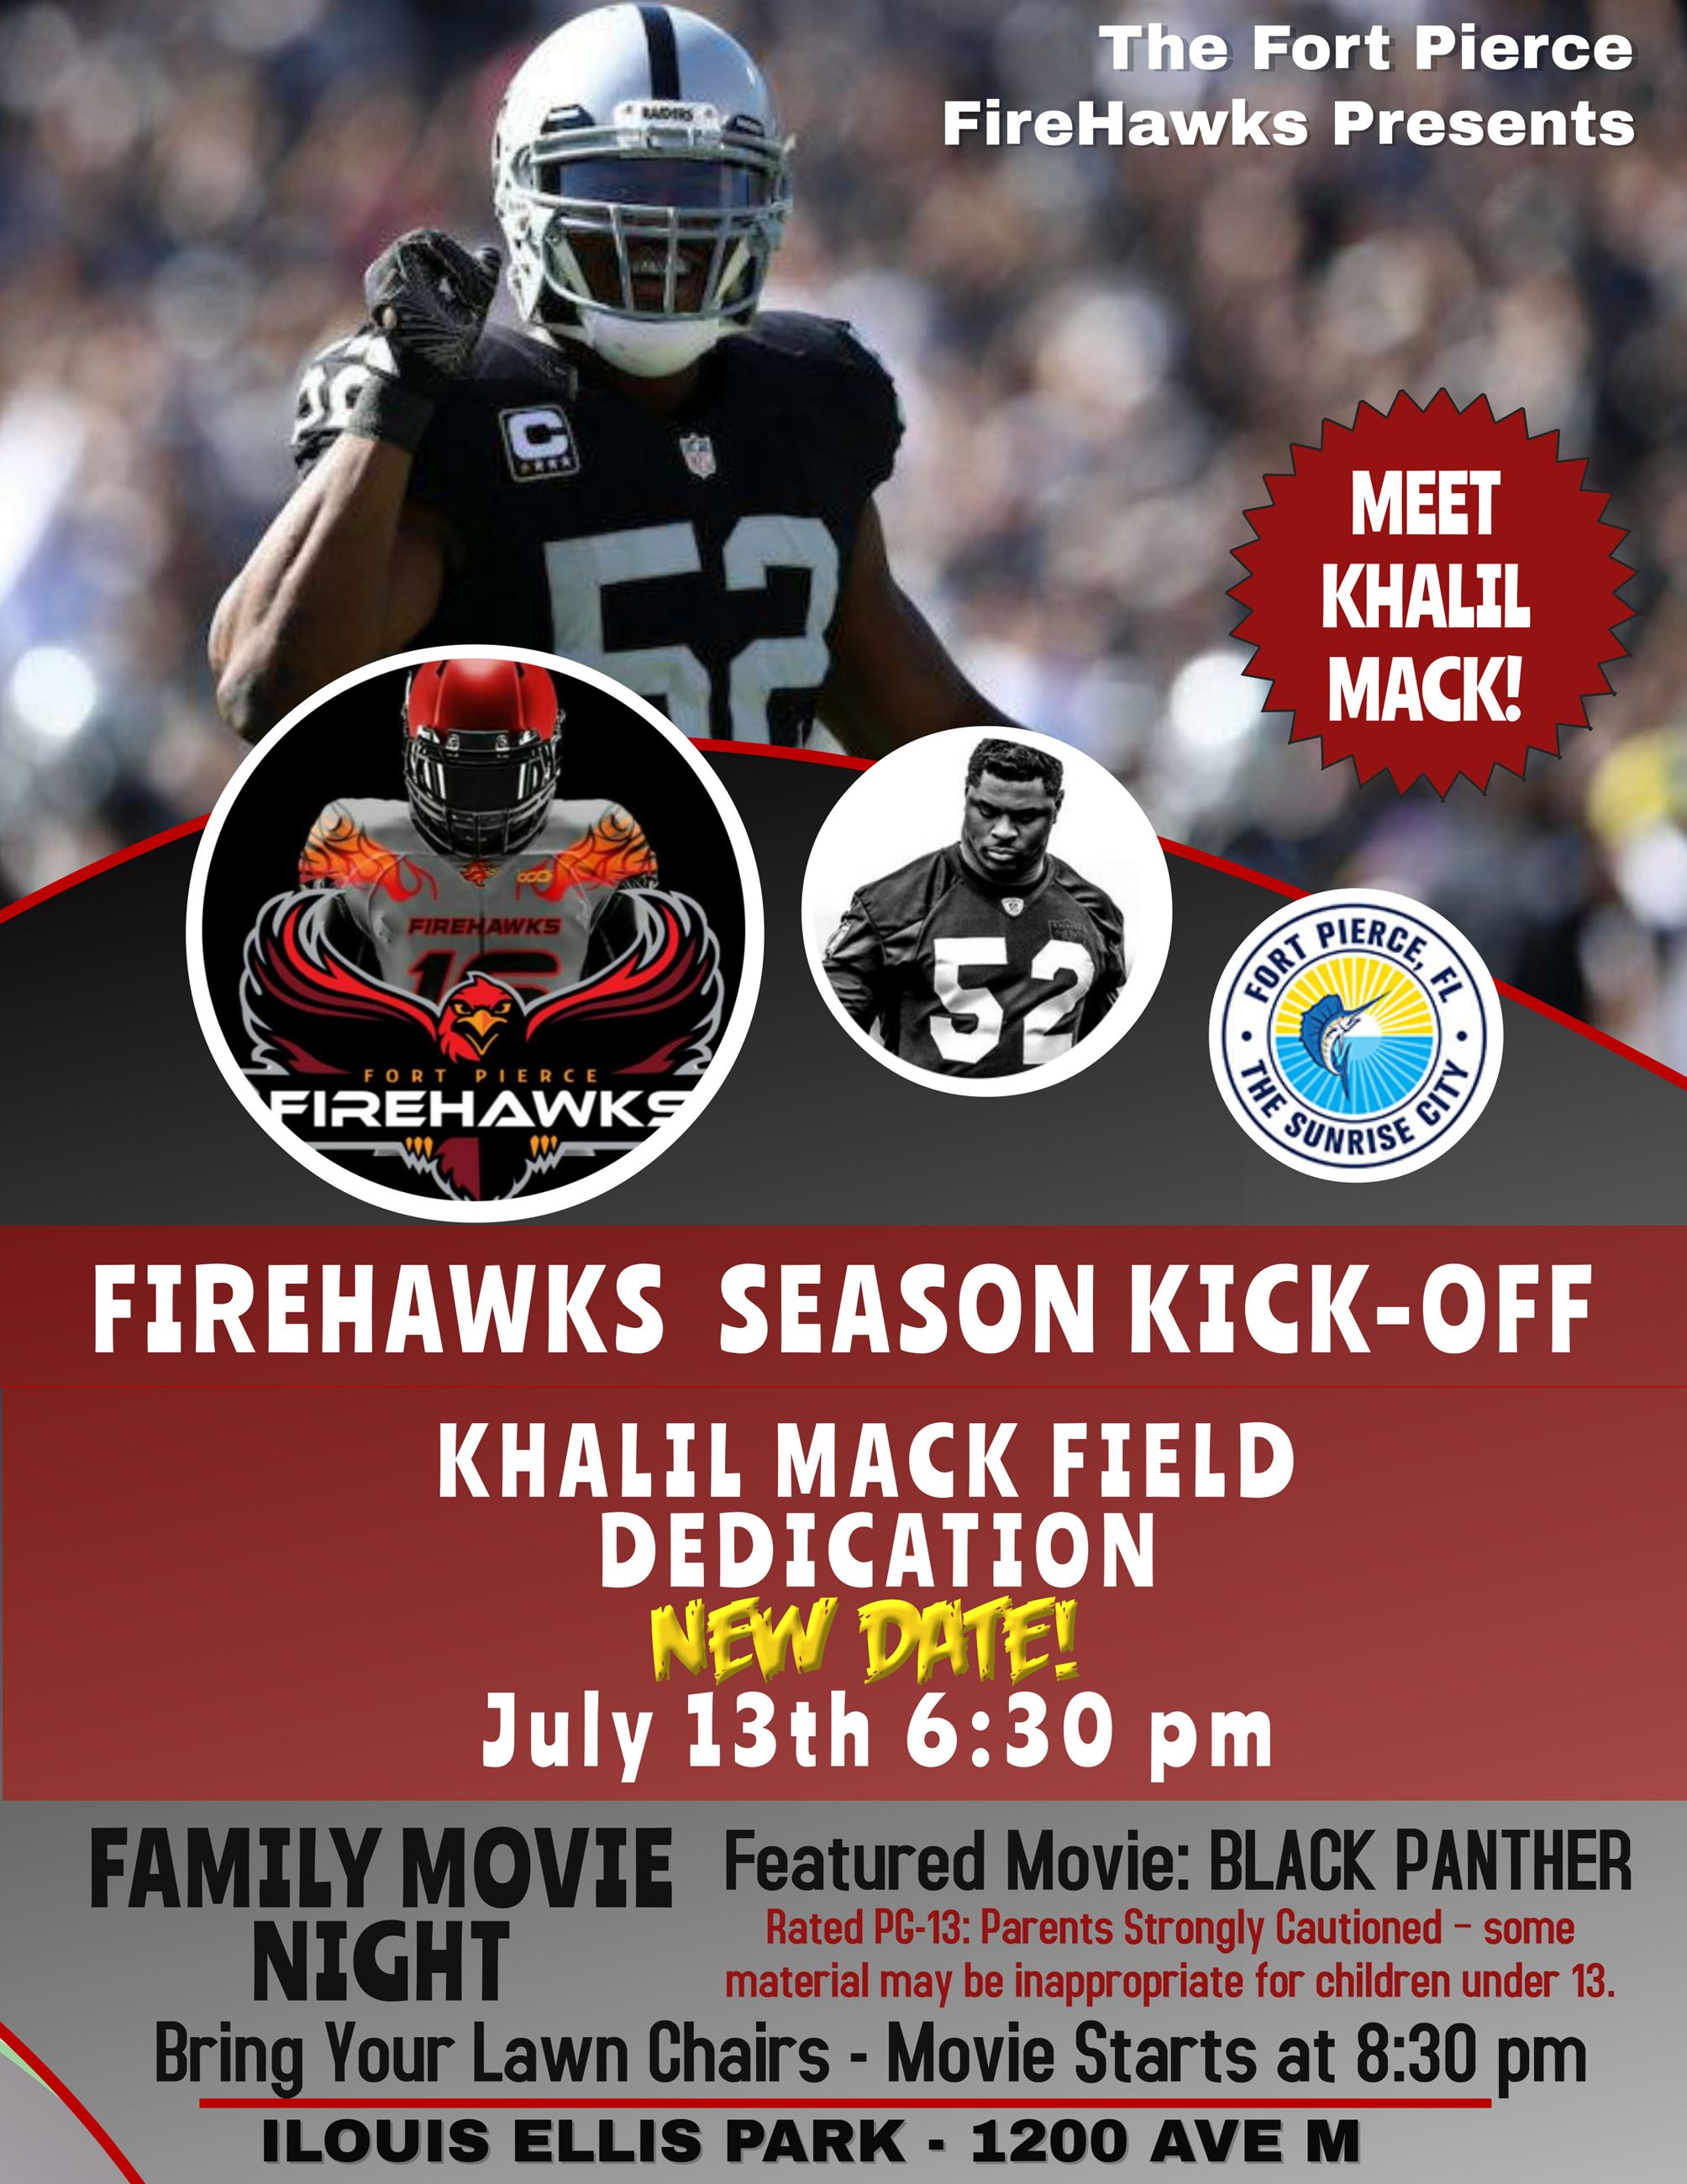 Khalil Mack Flyer Revised Date